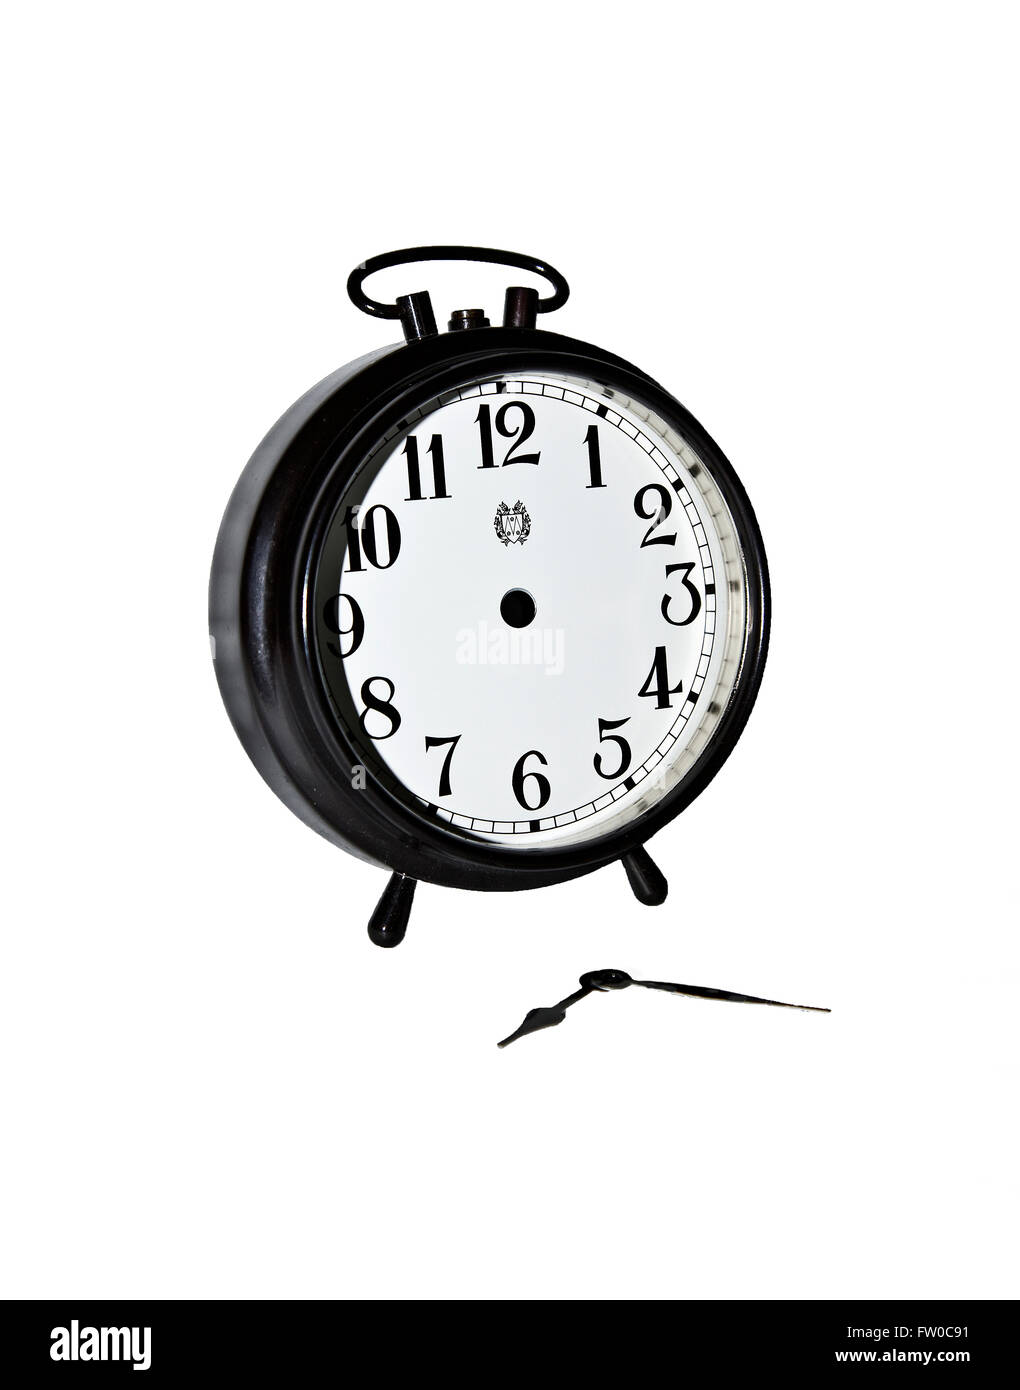 hands-fallen-off-alarm-clock-on-white-background-FW0C91.jpg